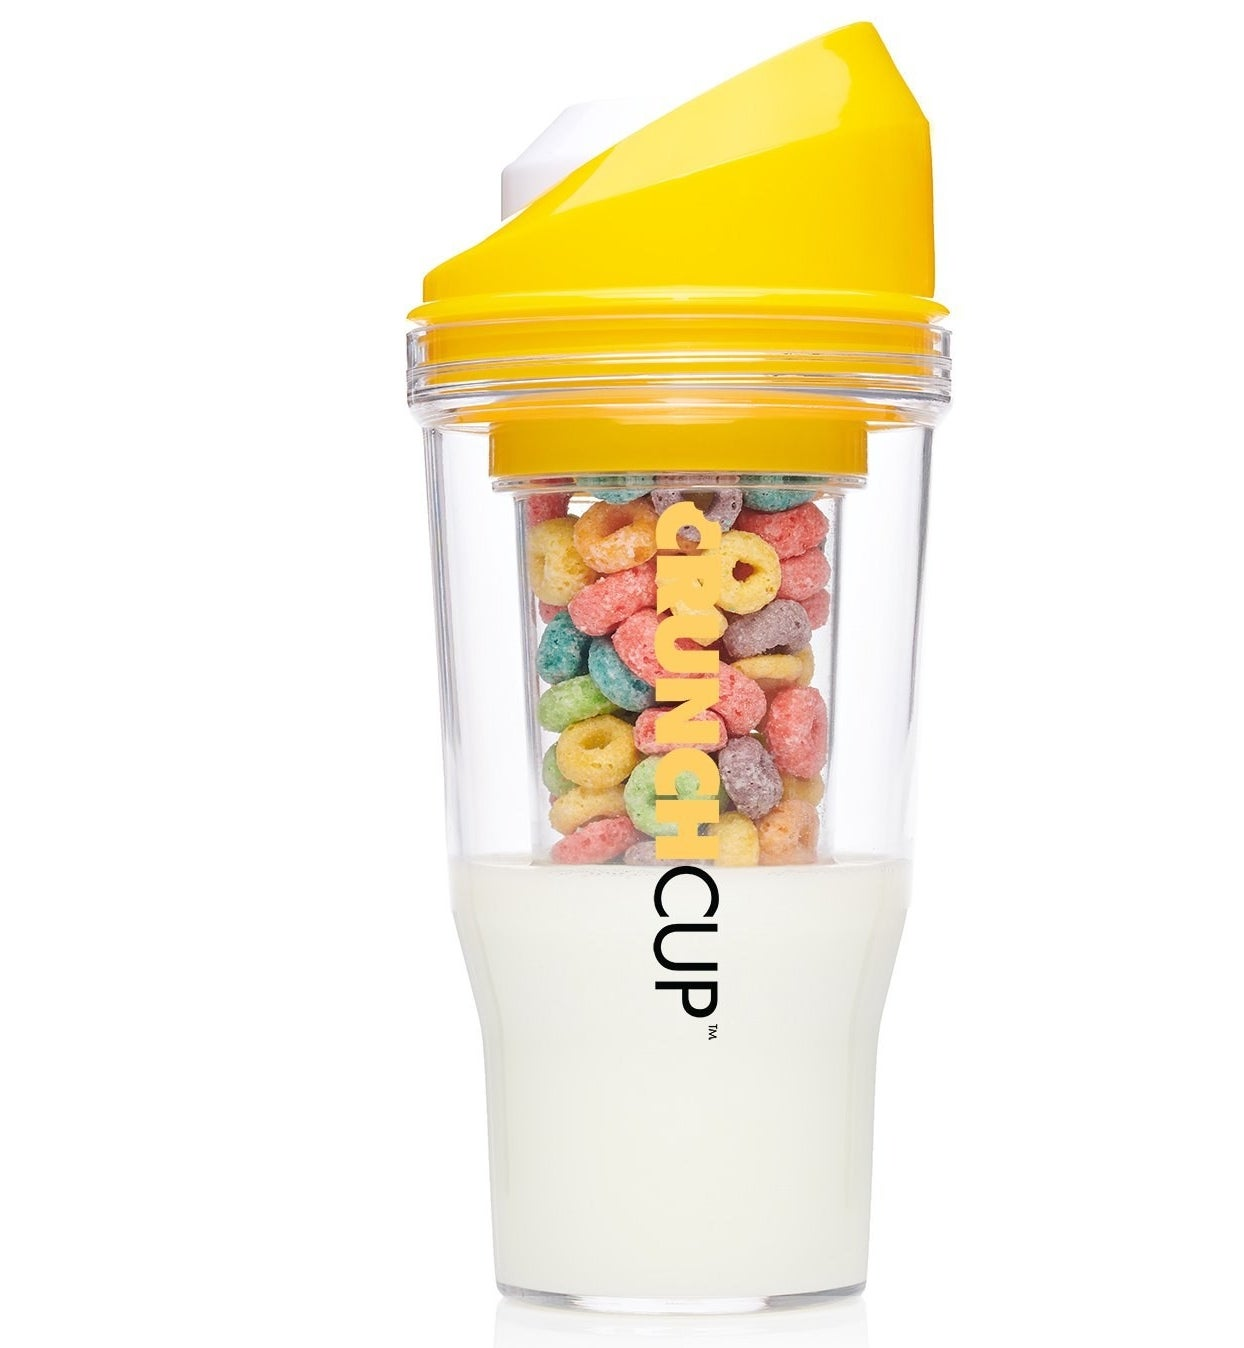 The Crunch Cup in yellow